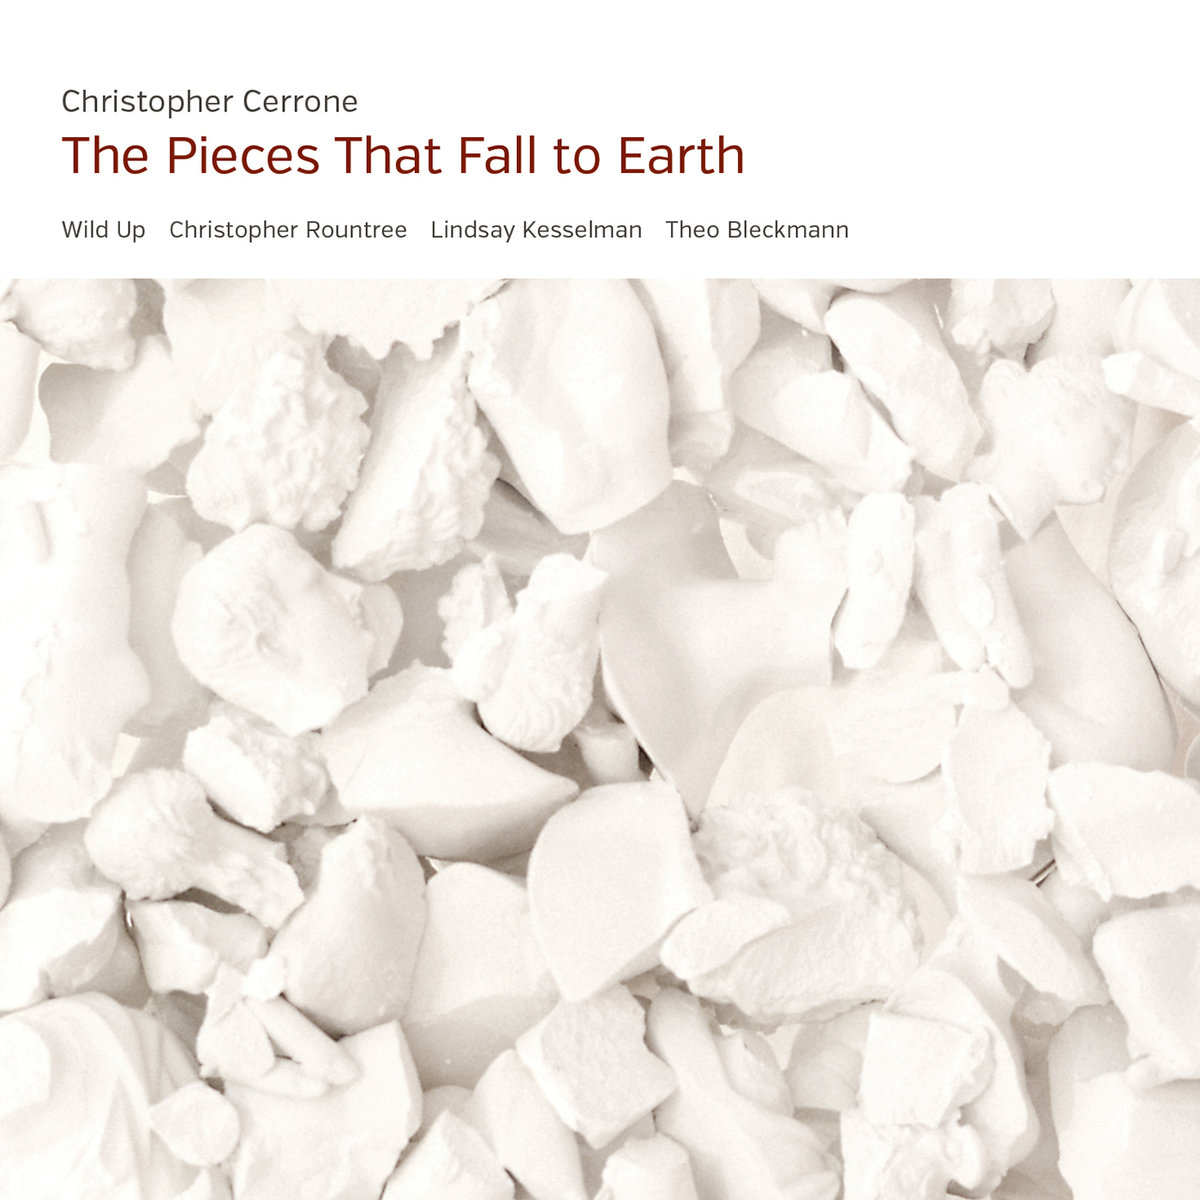 The Pieces That Fall to Earth, album cover